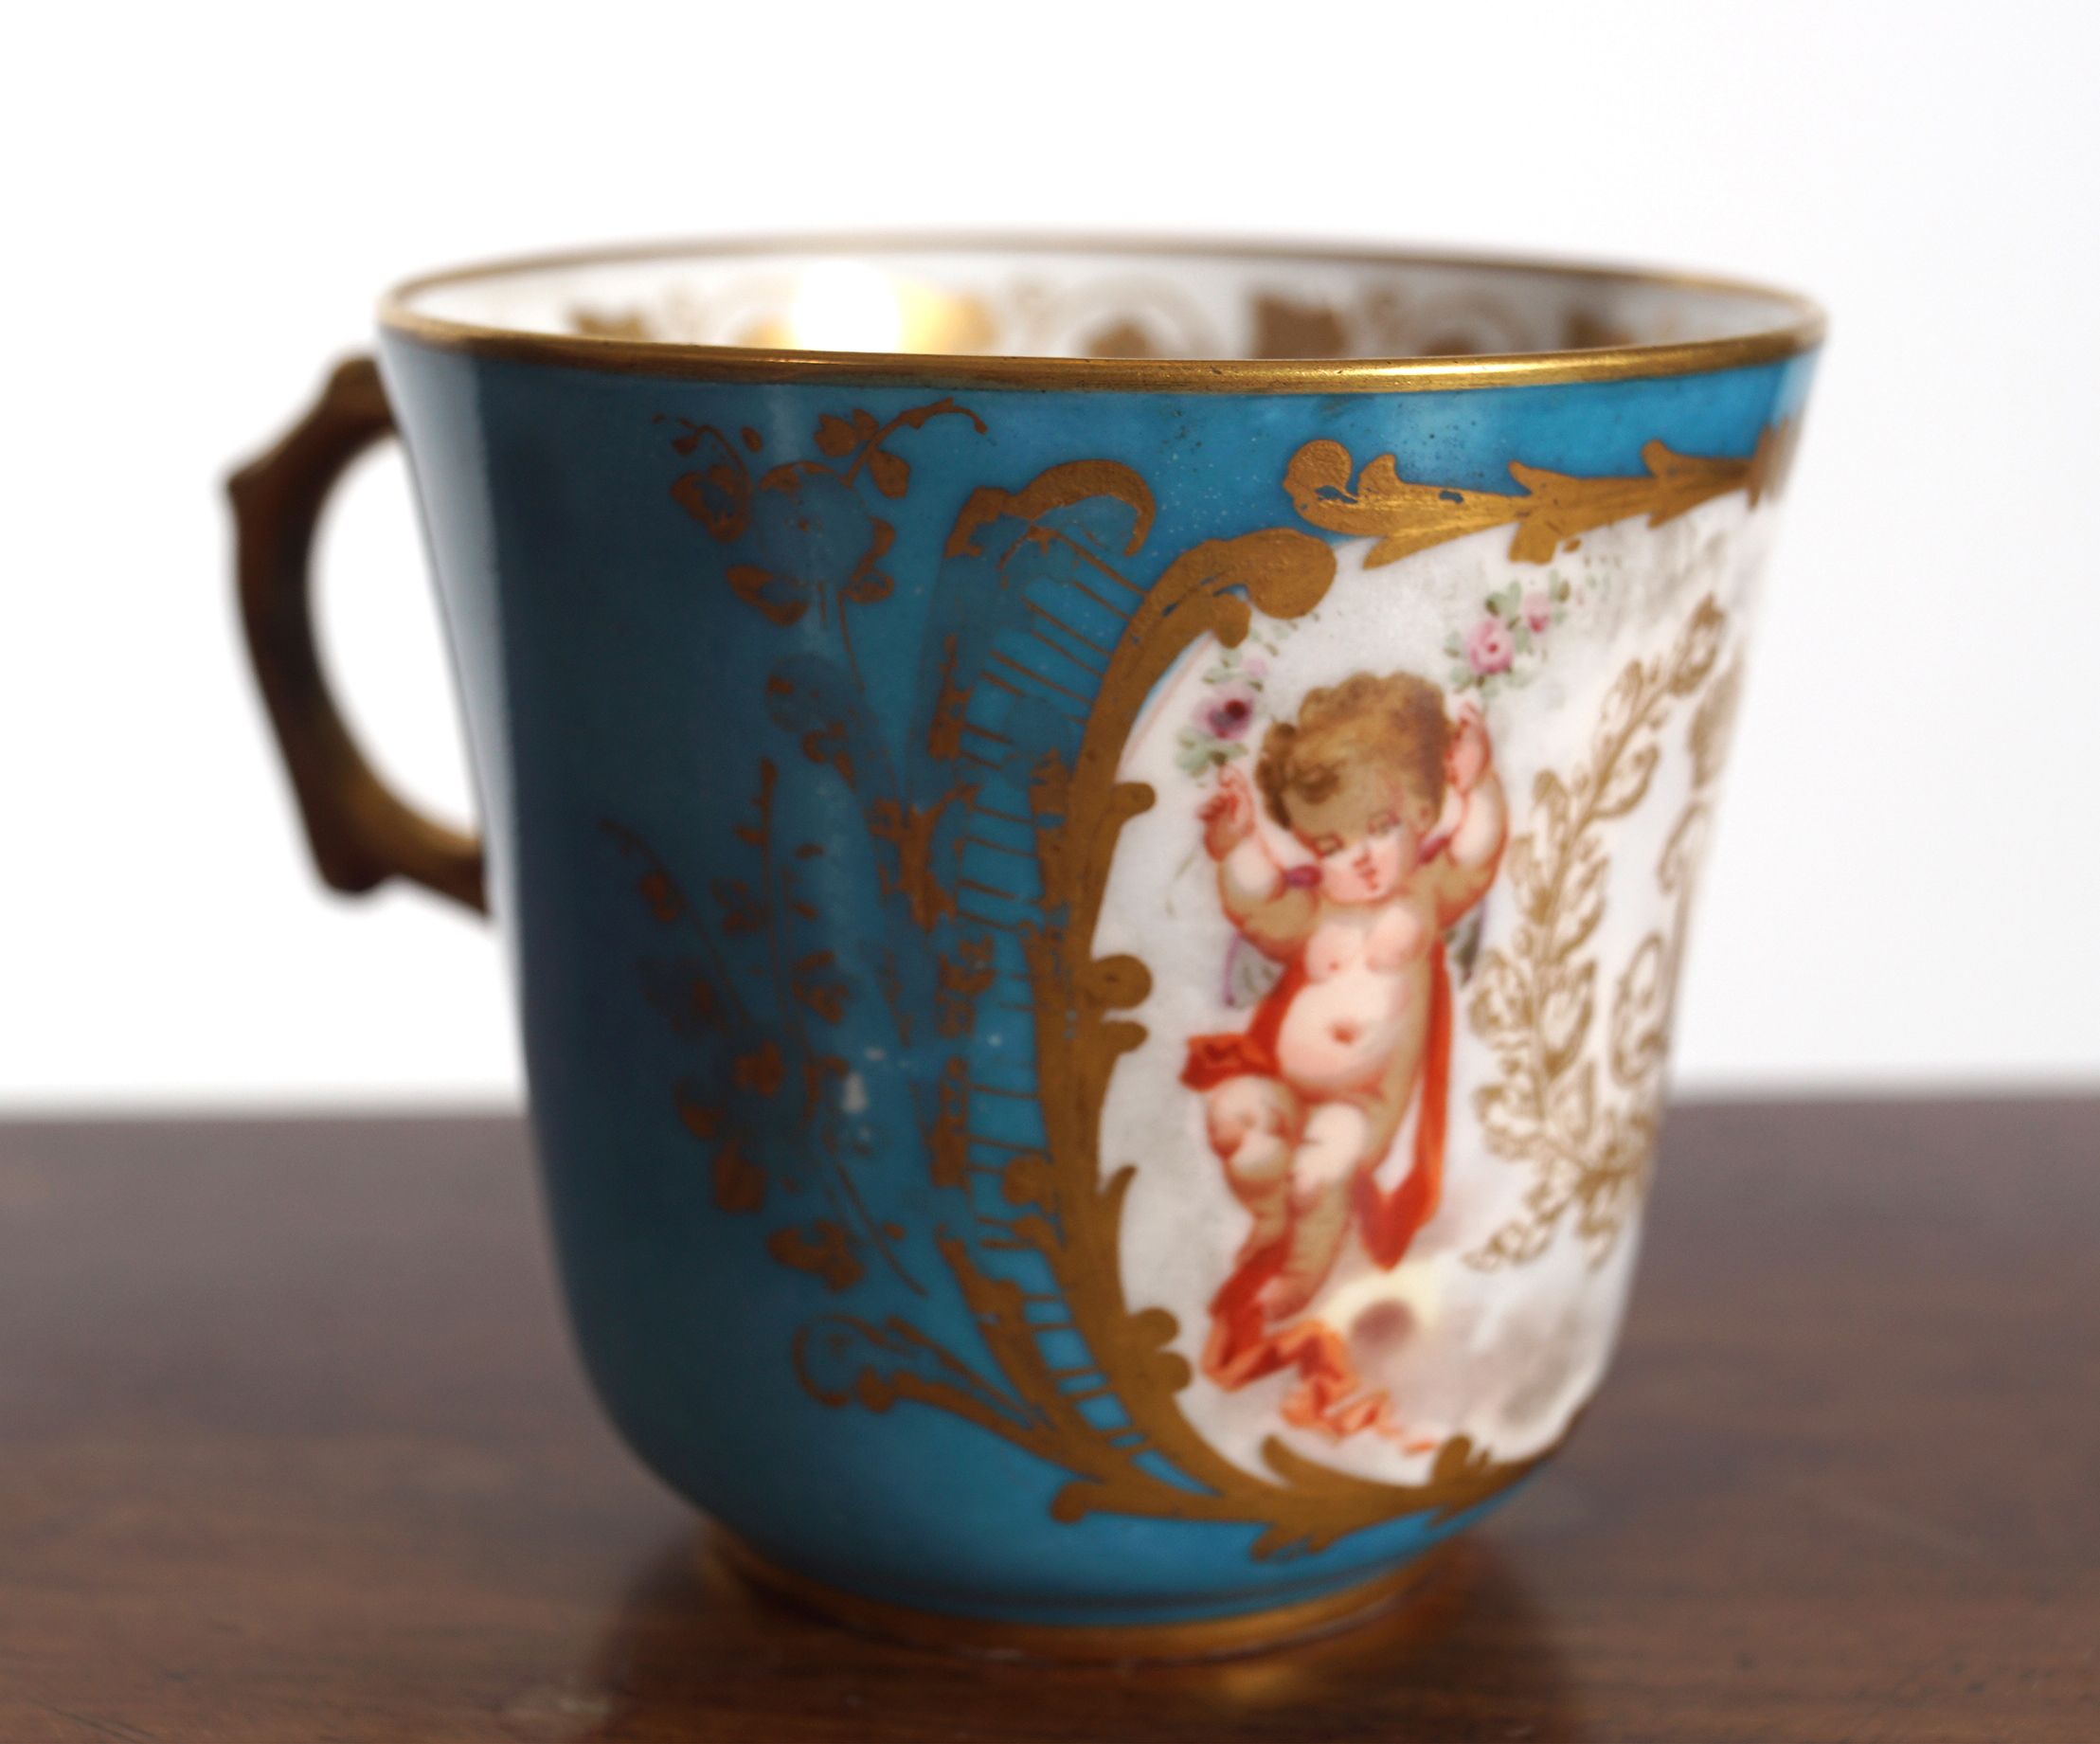 19TH-CENTURY SEVRES CUP